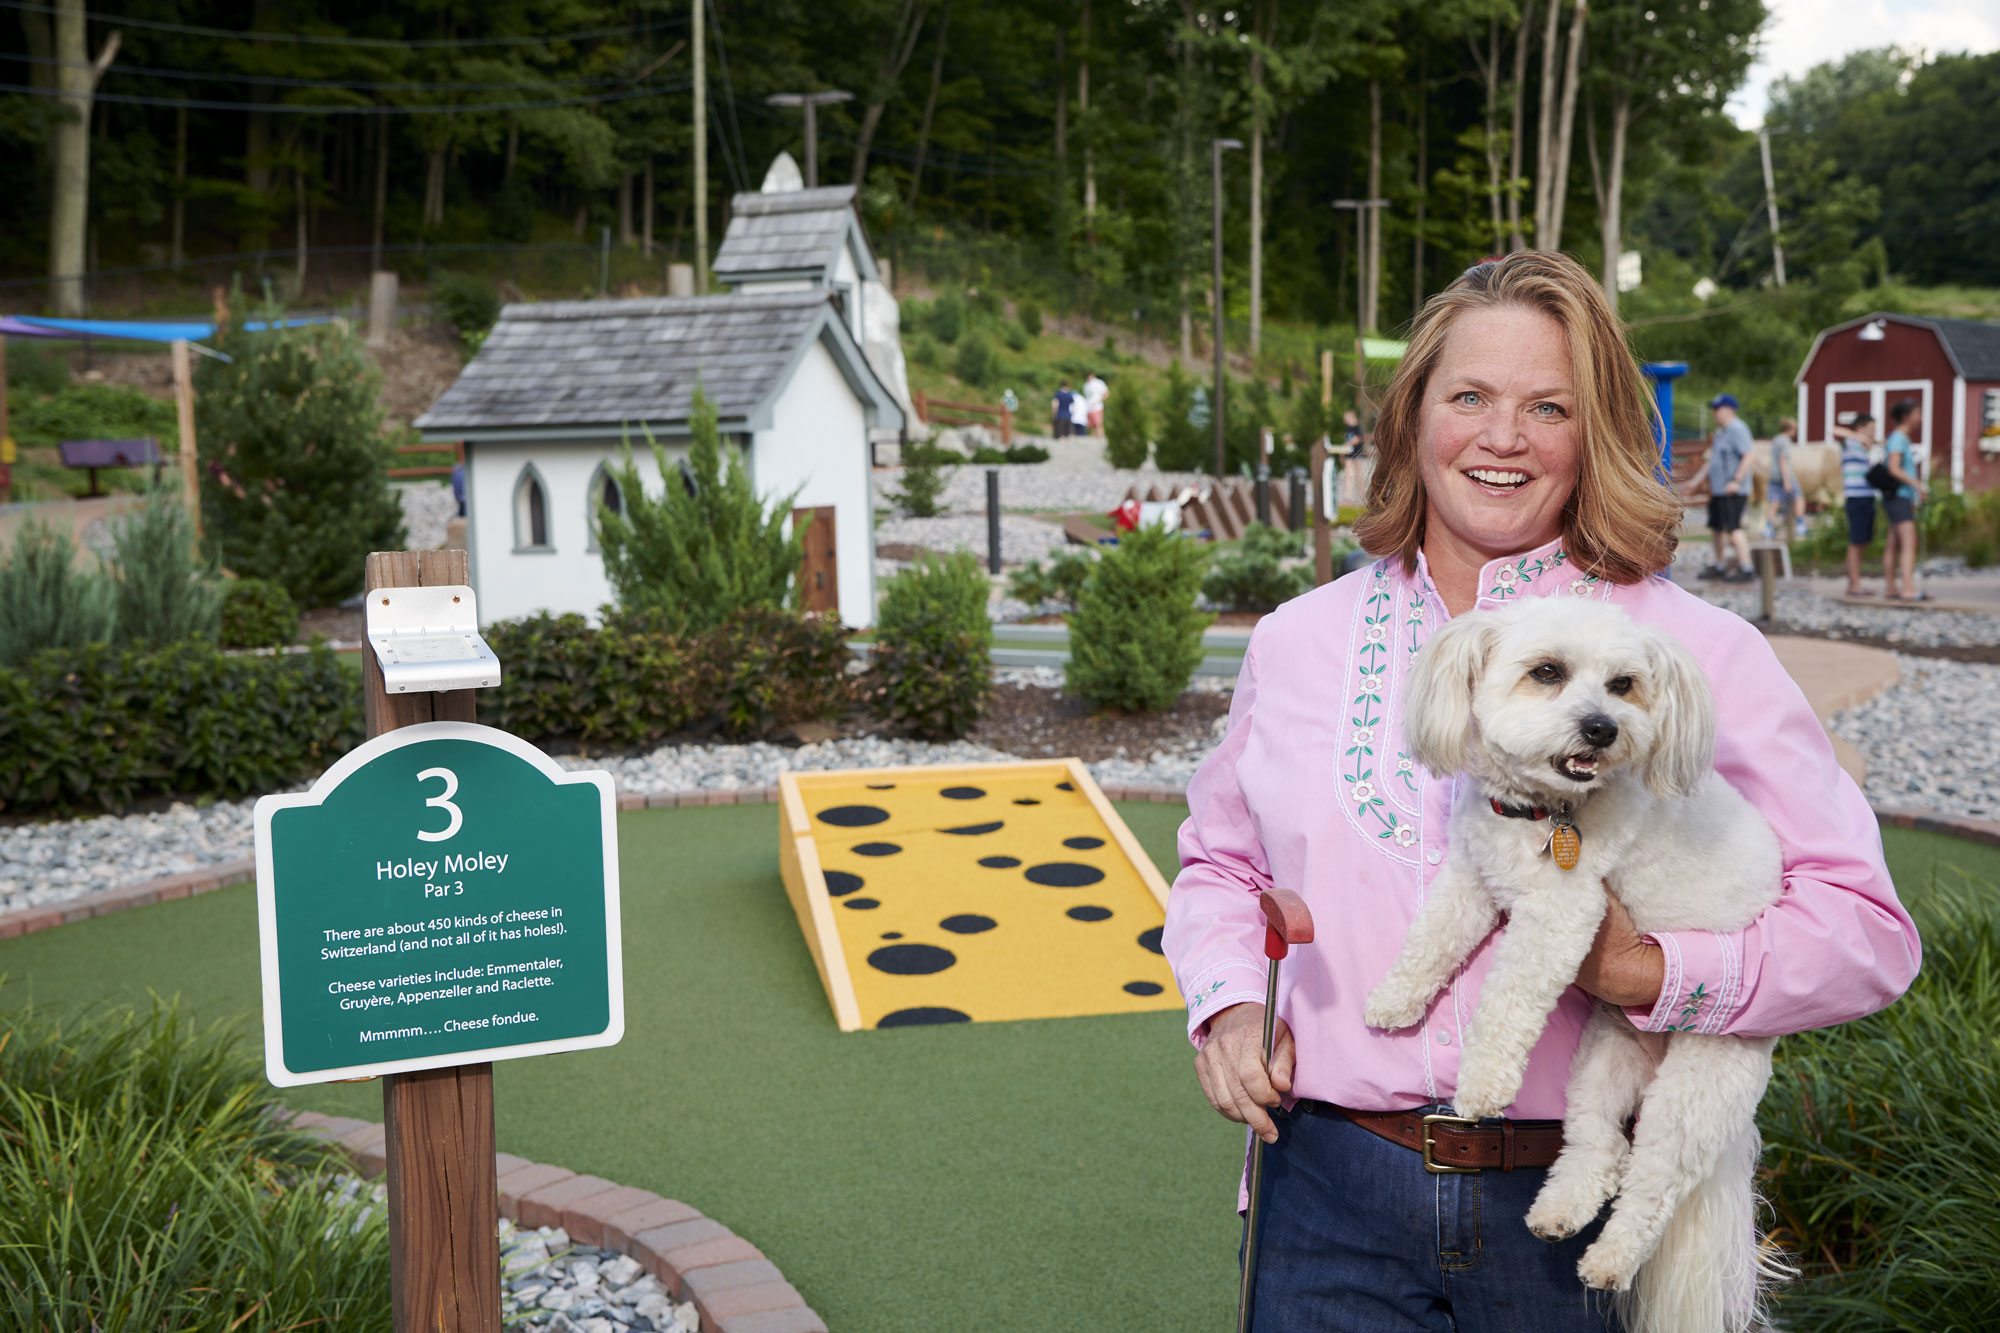 Alumni Autumn Sutherland owns Matterhorn Mini Golf Course